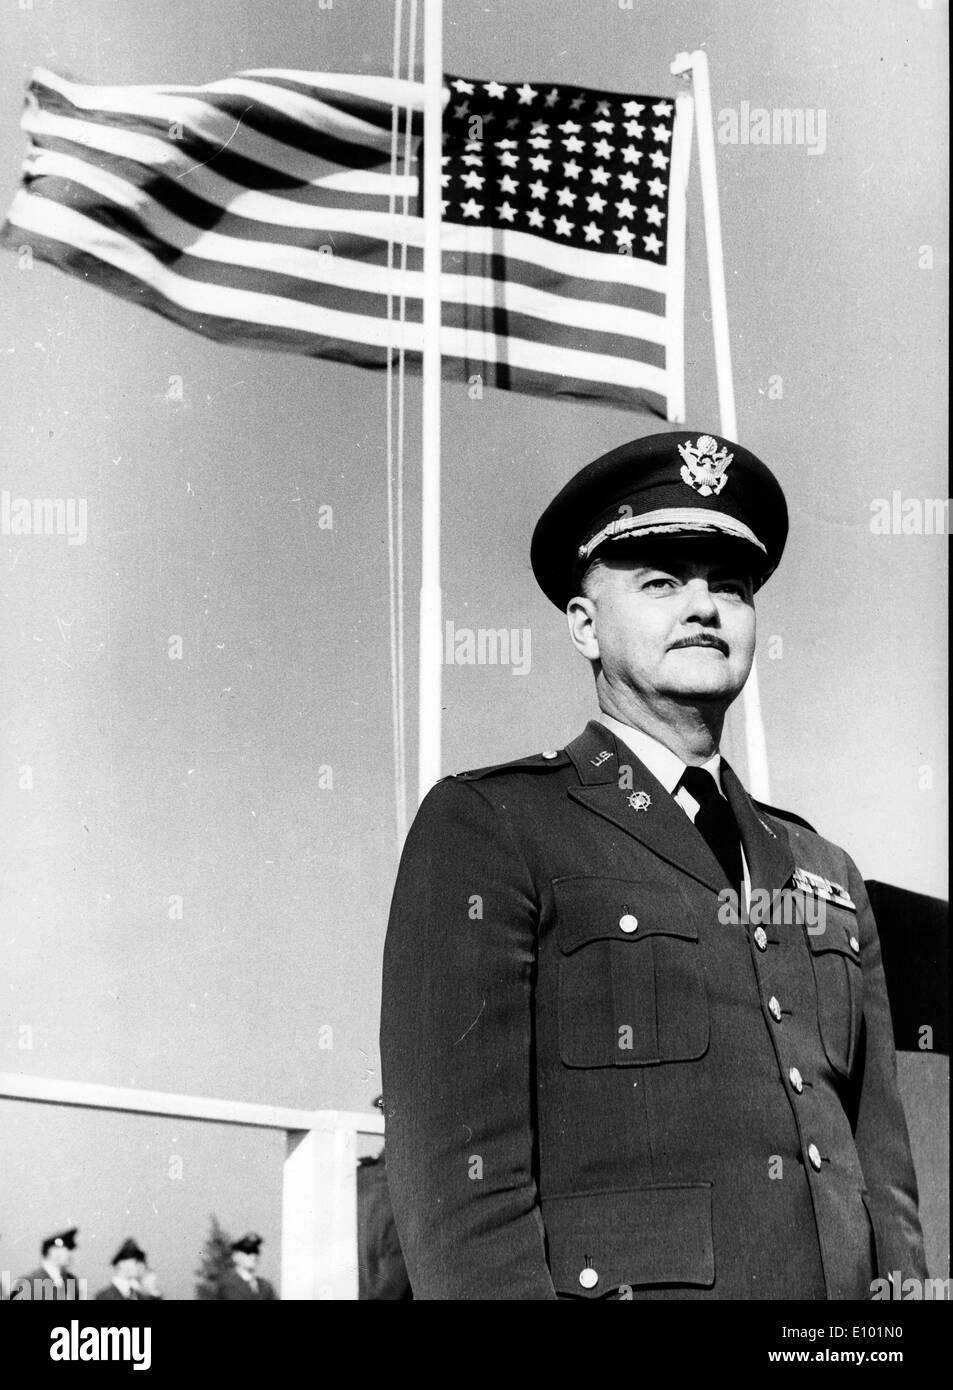 Colonel commander Bremerhaven IRVIN W. BROOKS - Stock Image